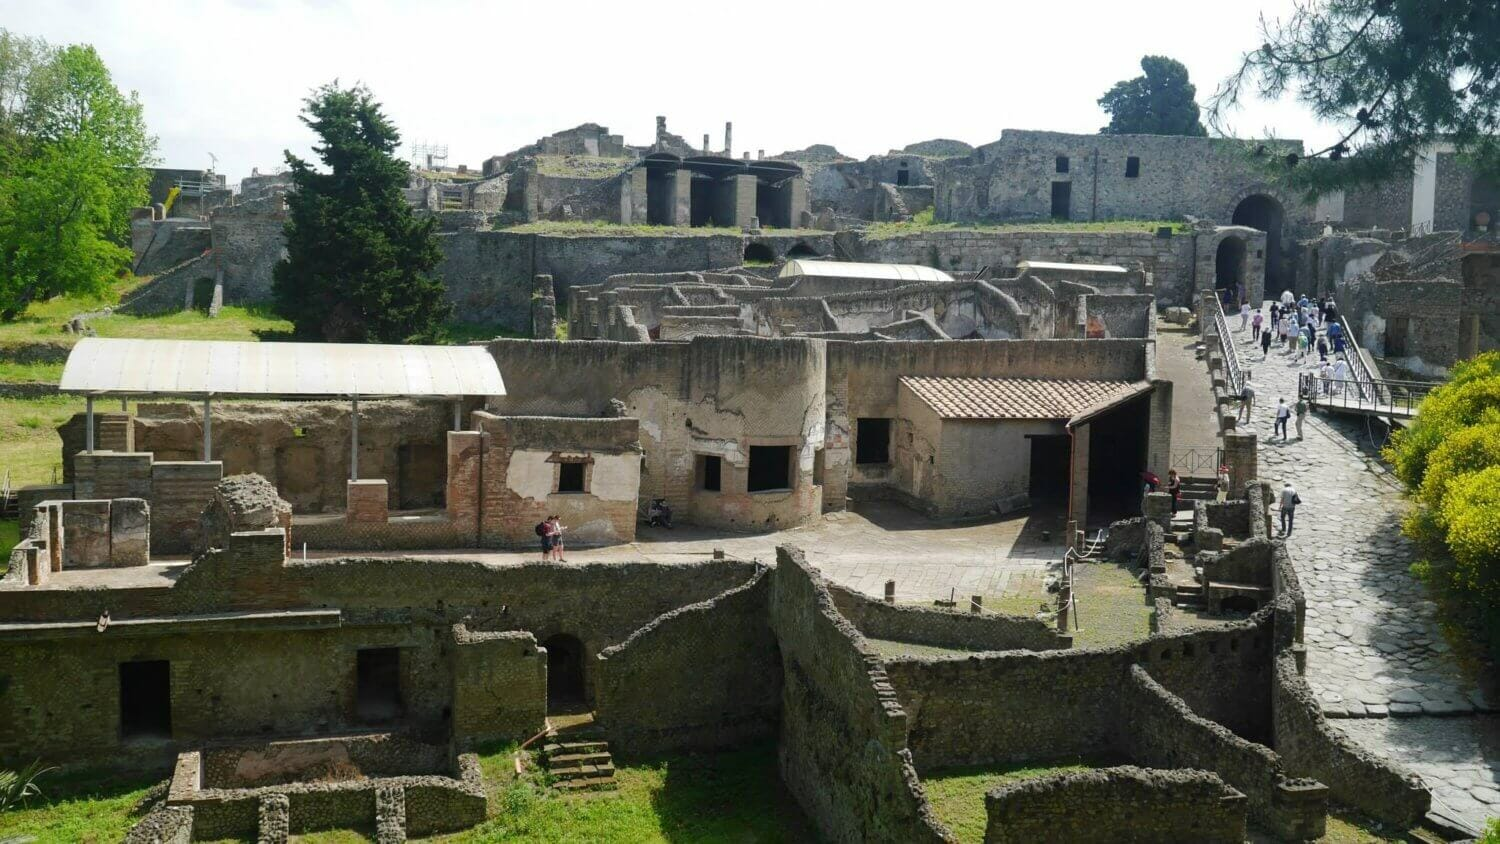 via marina Pompei, Pompei main entrance